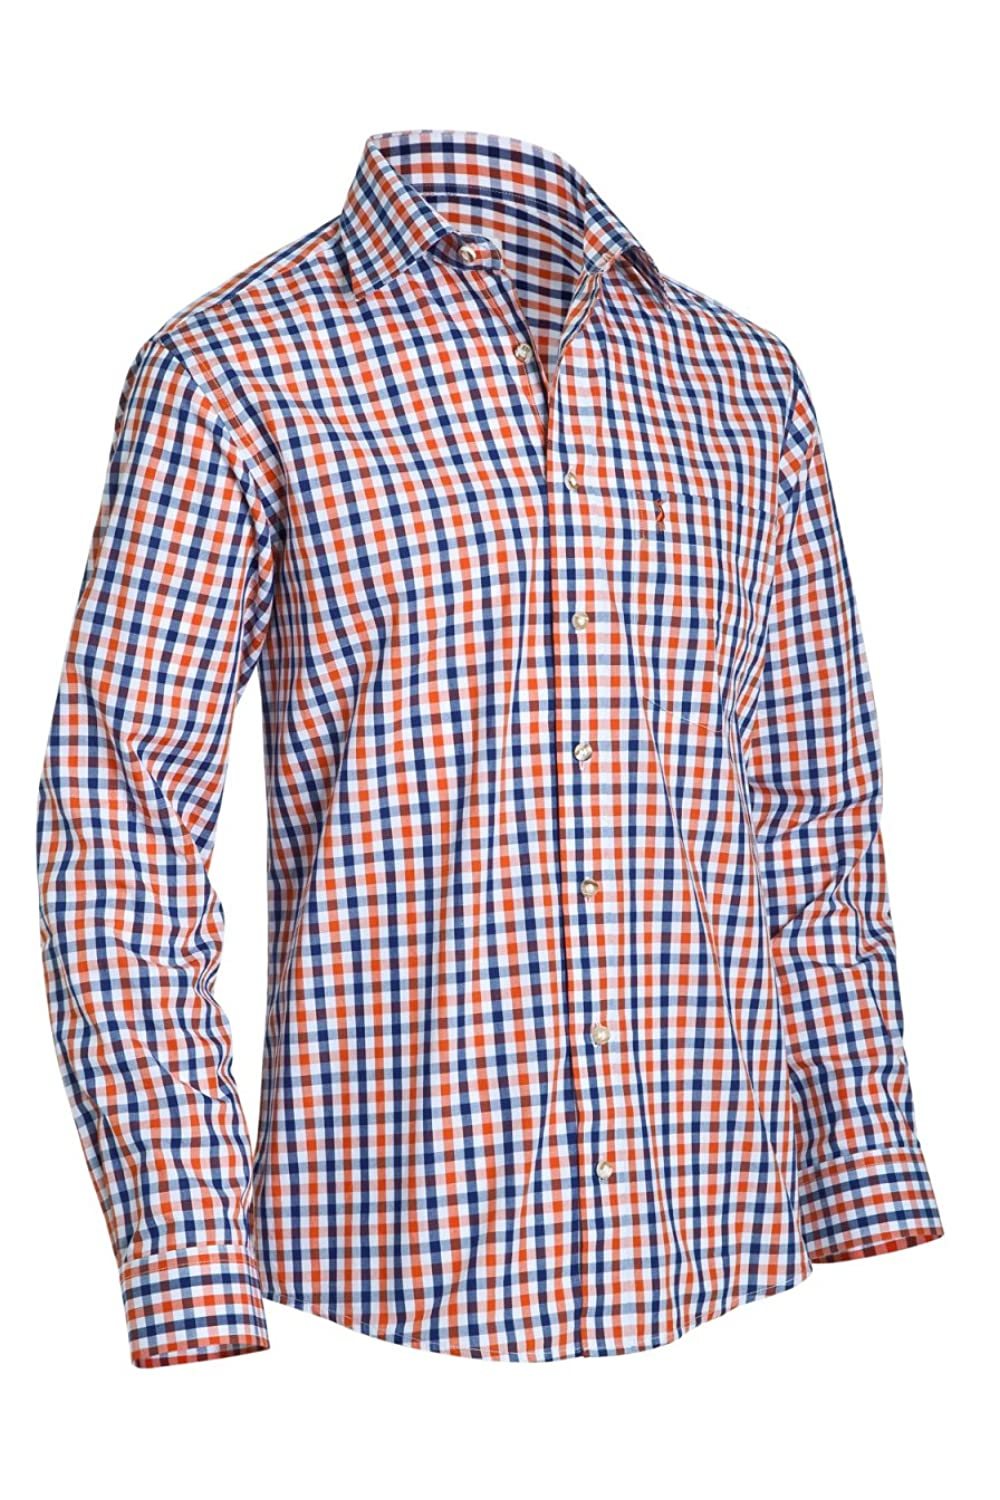 Almsach Herren Regular Fit Trachten Hemd 151 orange/blau